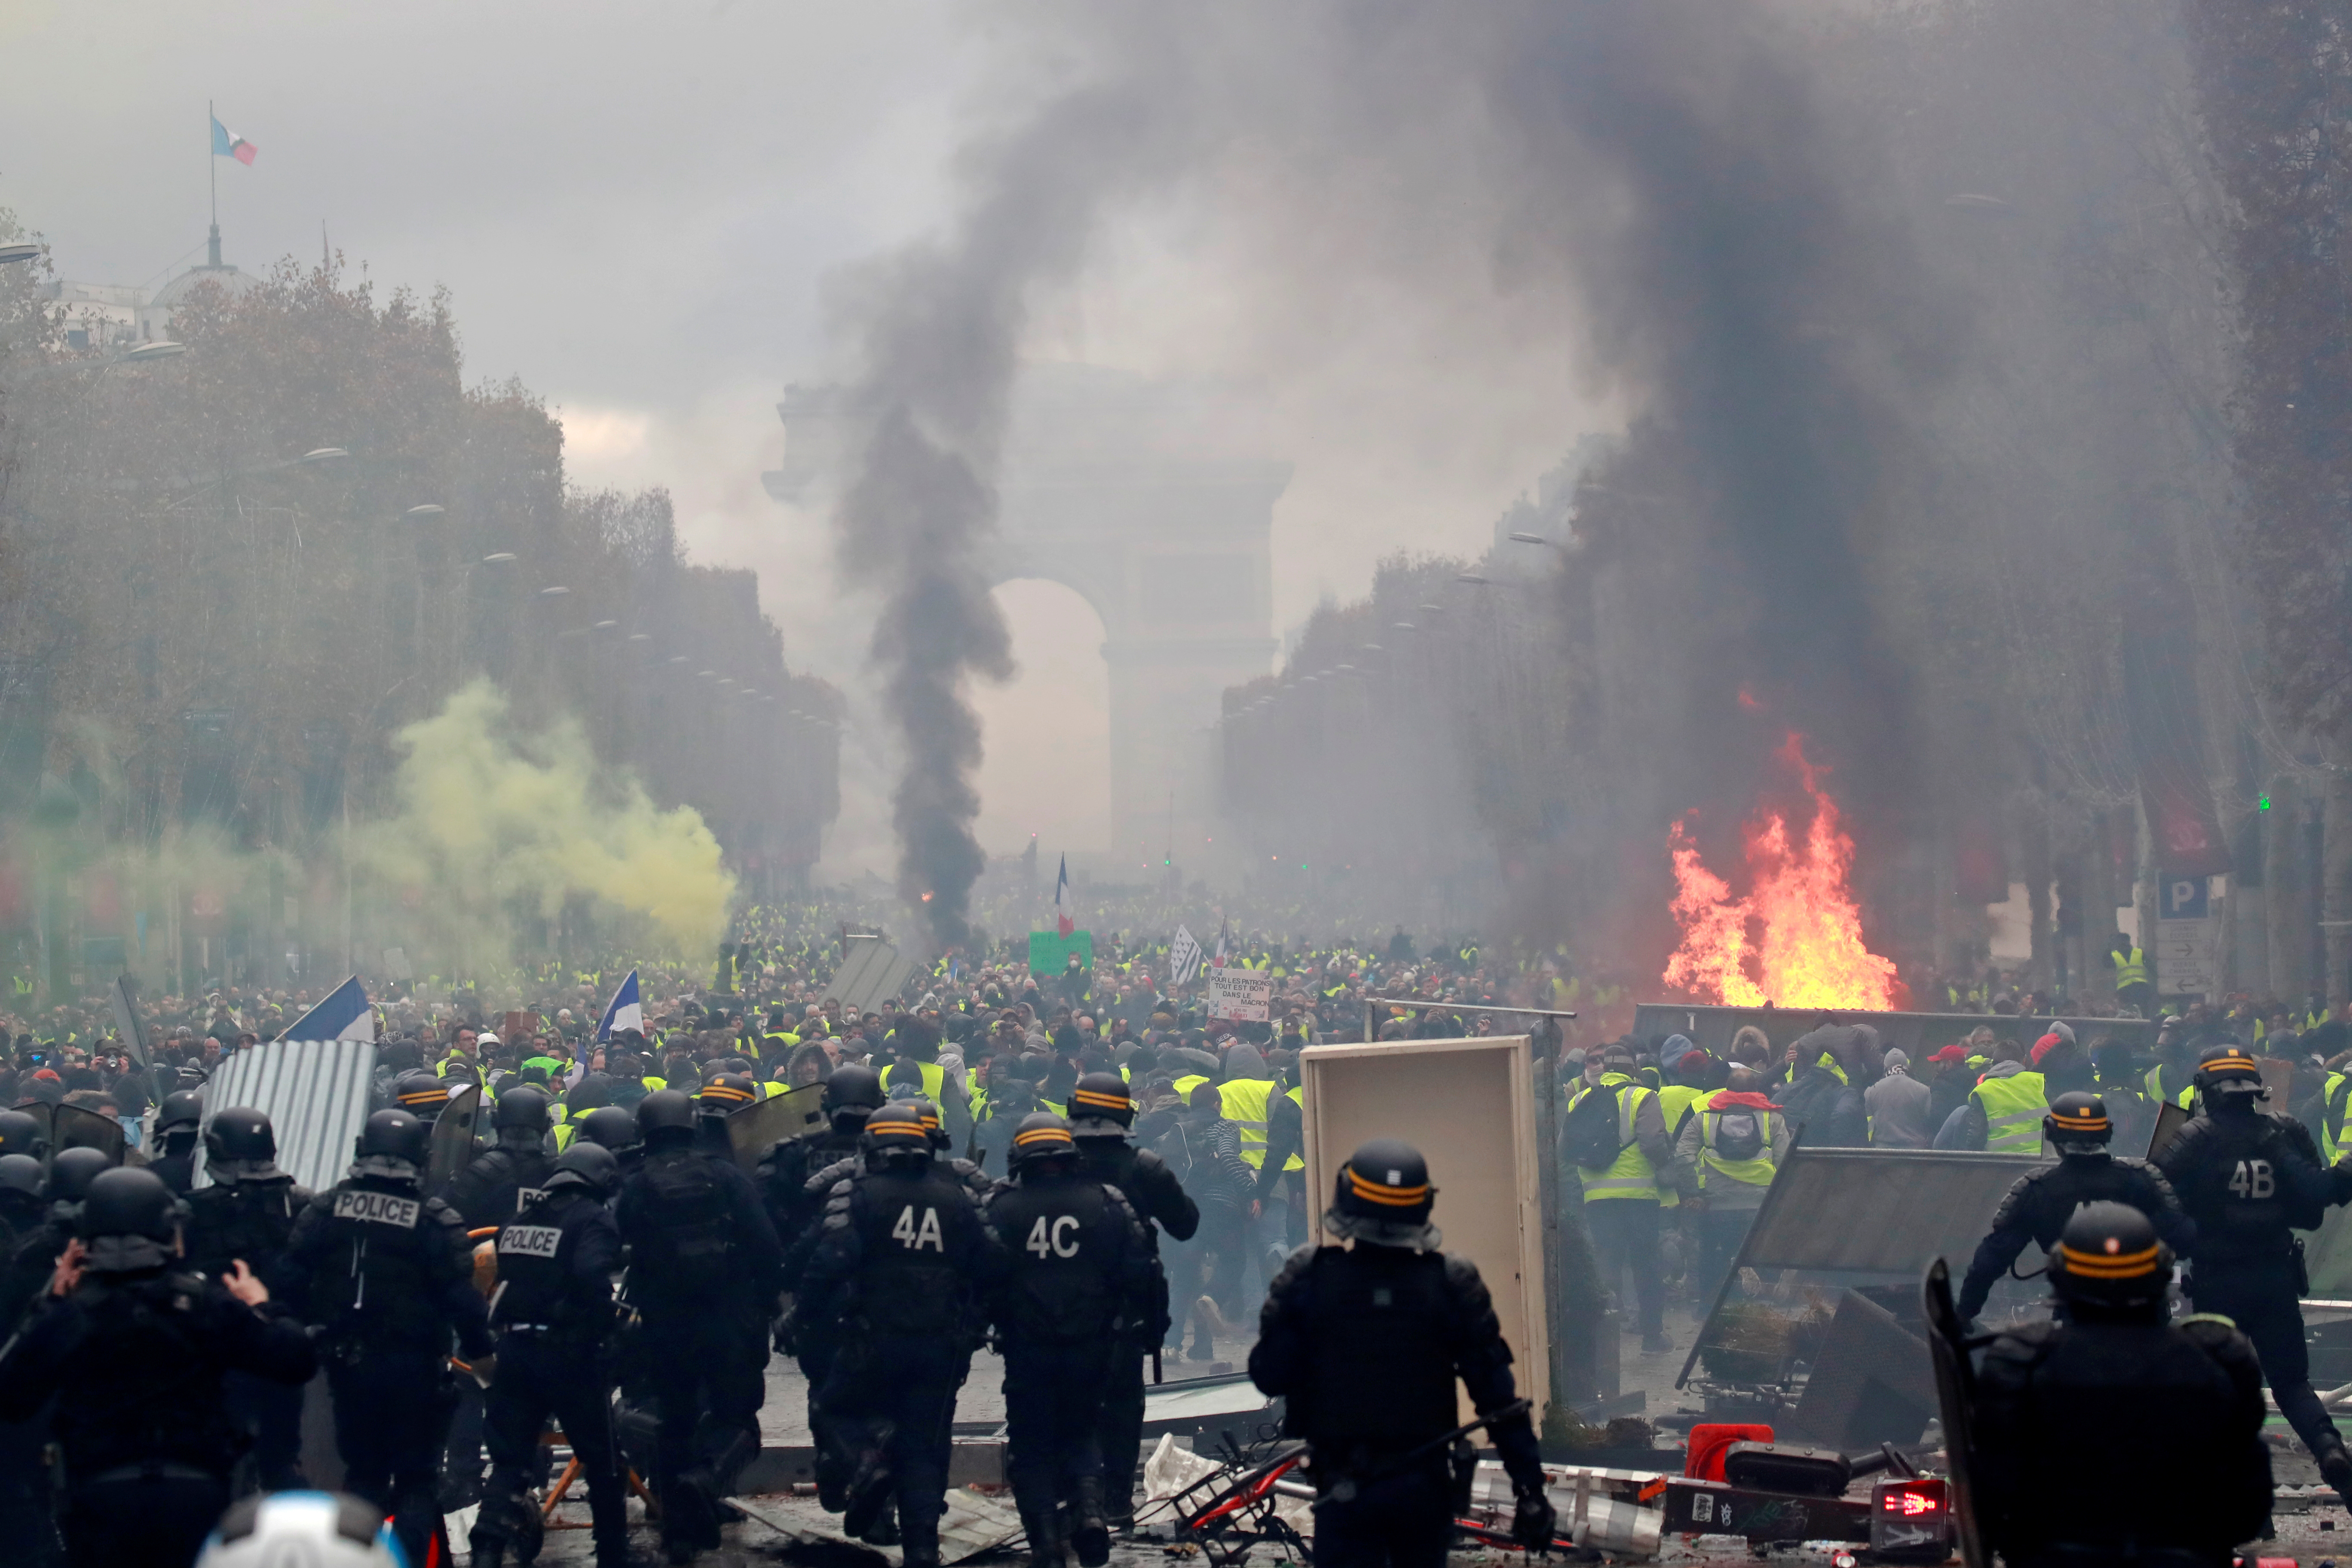 Protesters wearing yellow vests, a symbol of a French drivers' protest against higher fuel prices, run from police during riots on the Champs-Elysees in Paris, France, November 24, 2018. REUTERS/Gonzalo Fuentes